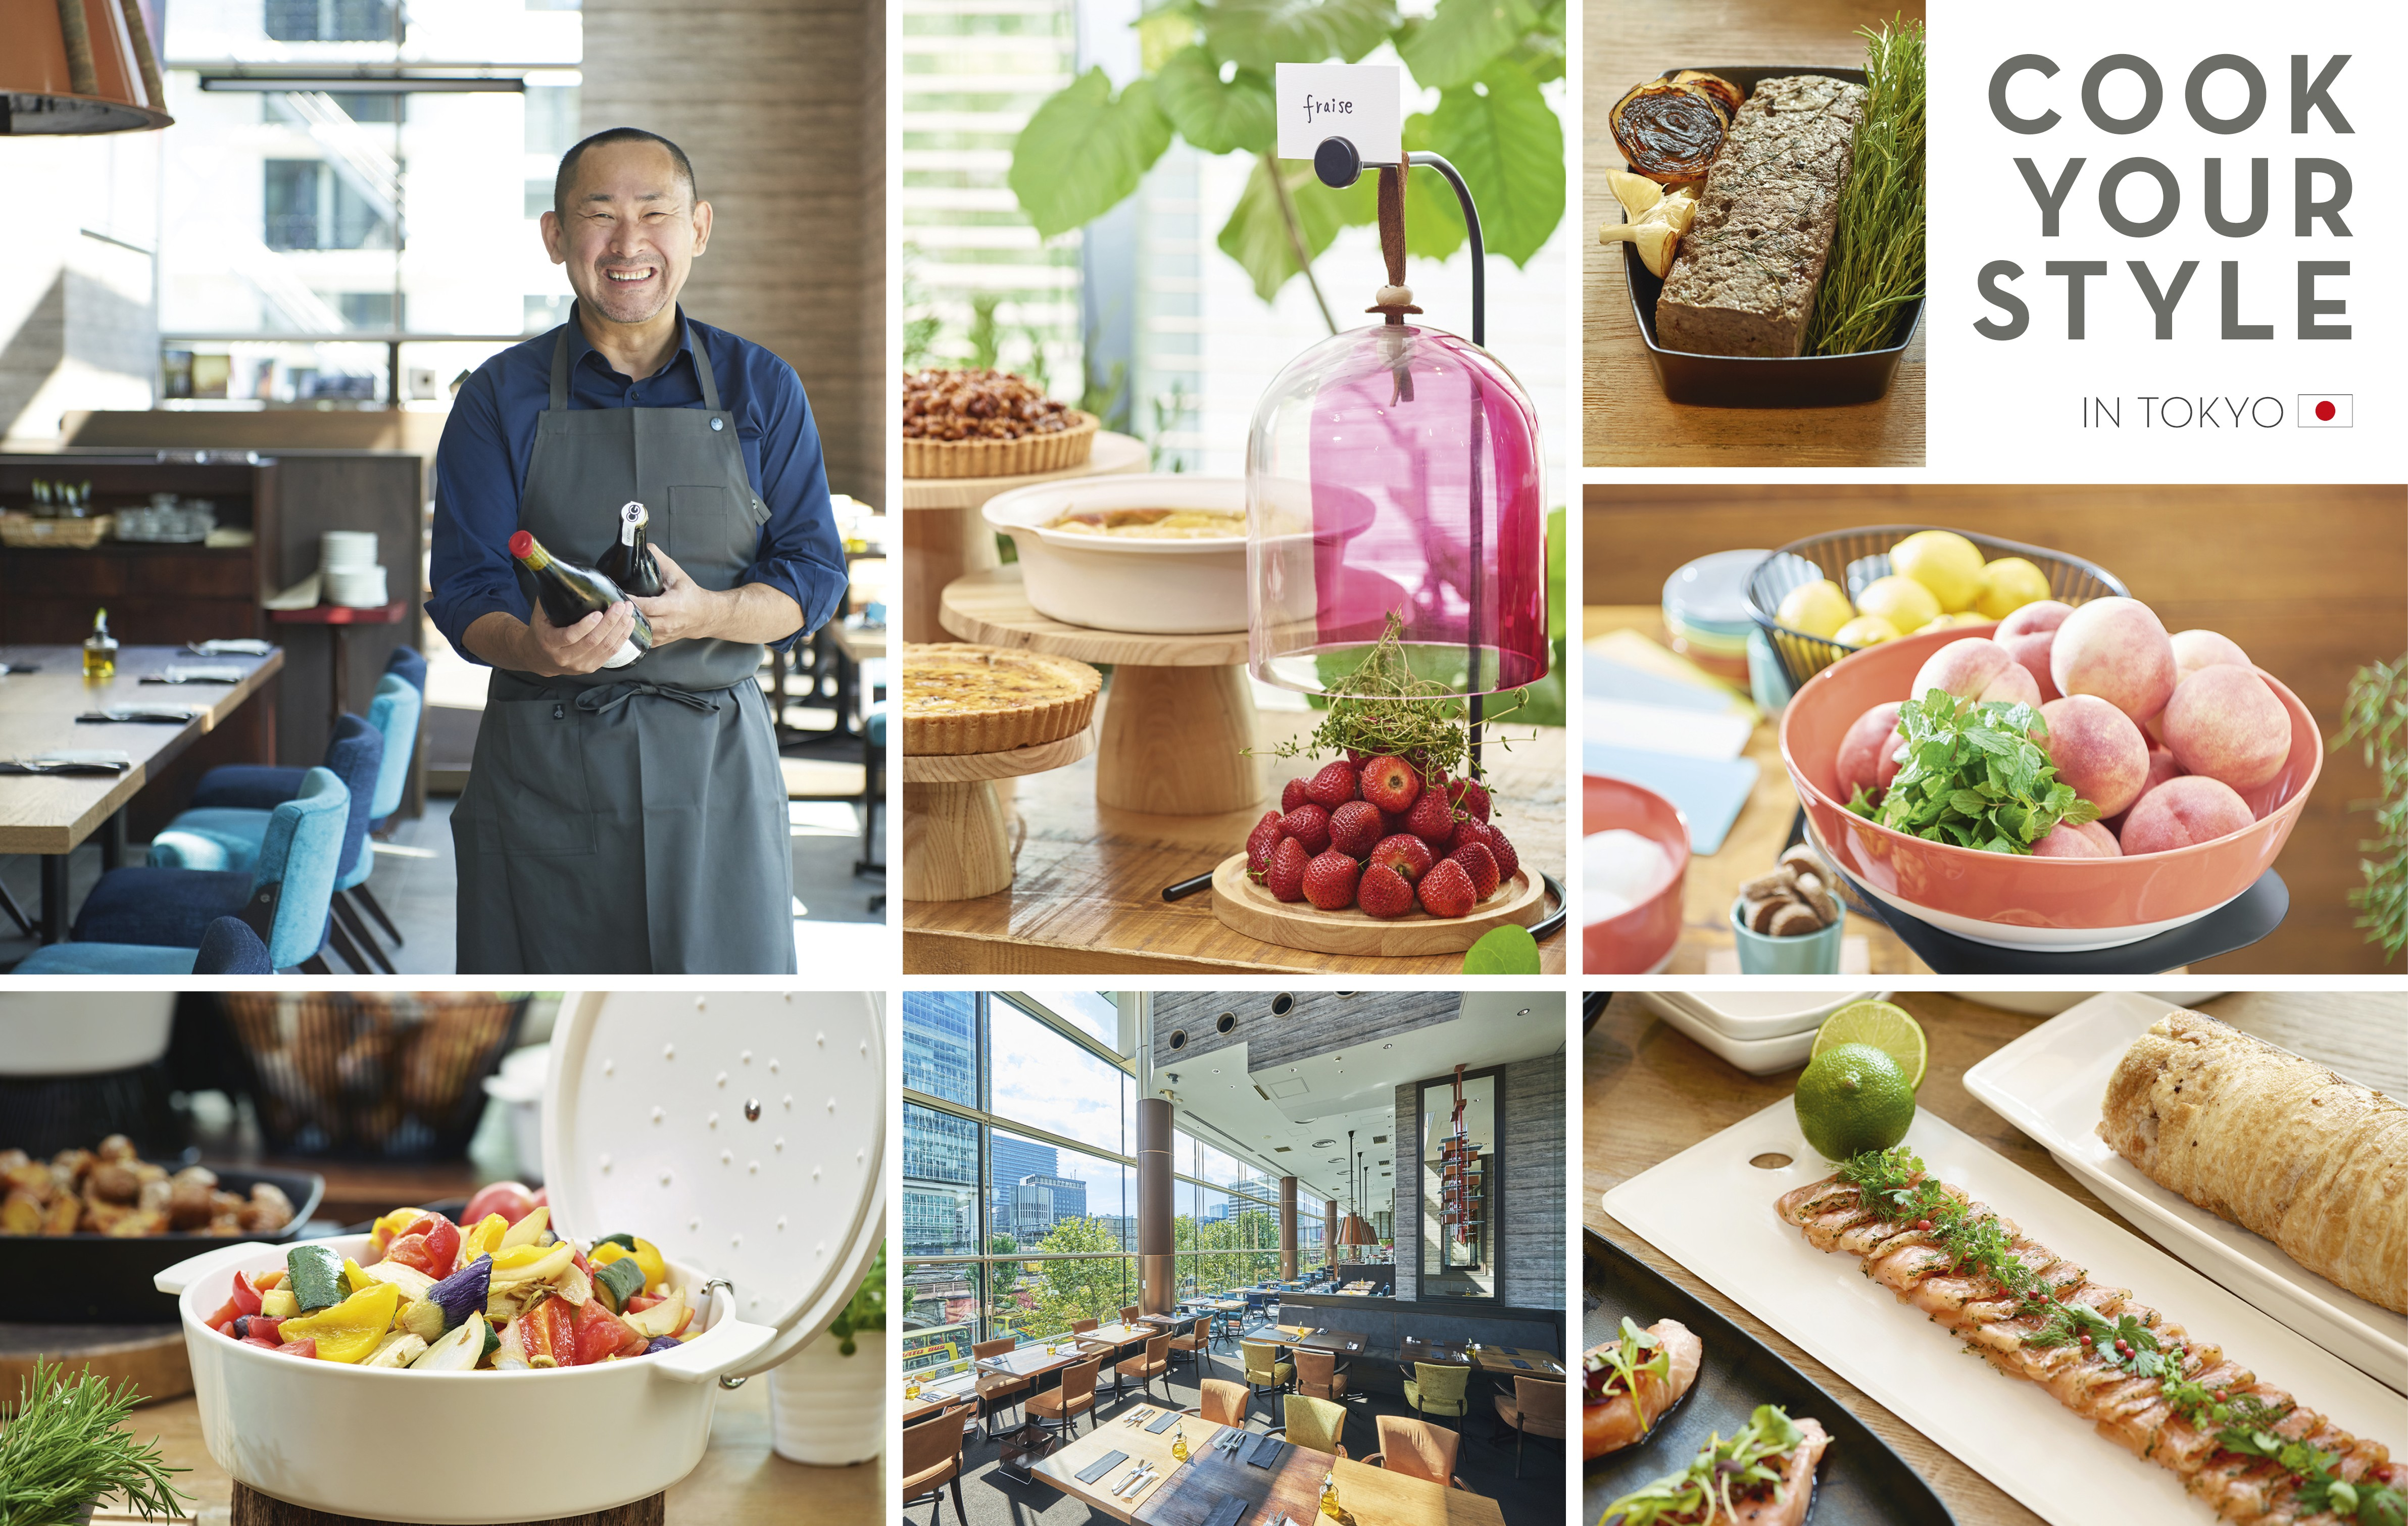 cook your style in tokyo